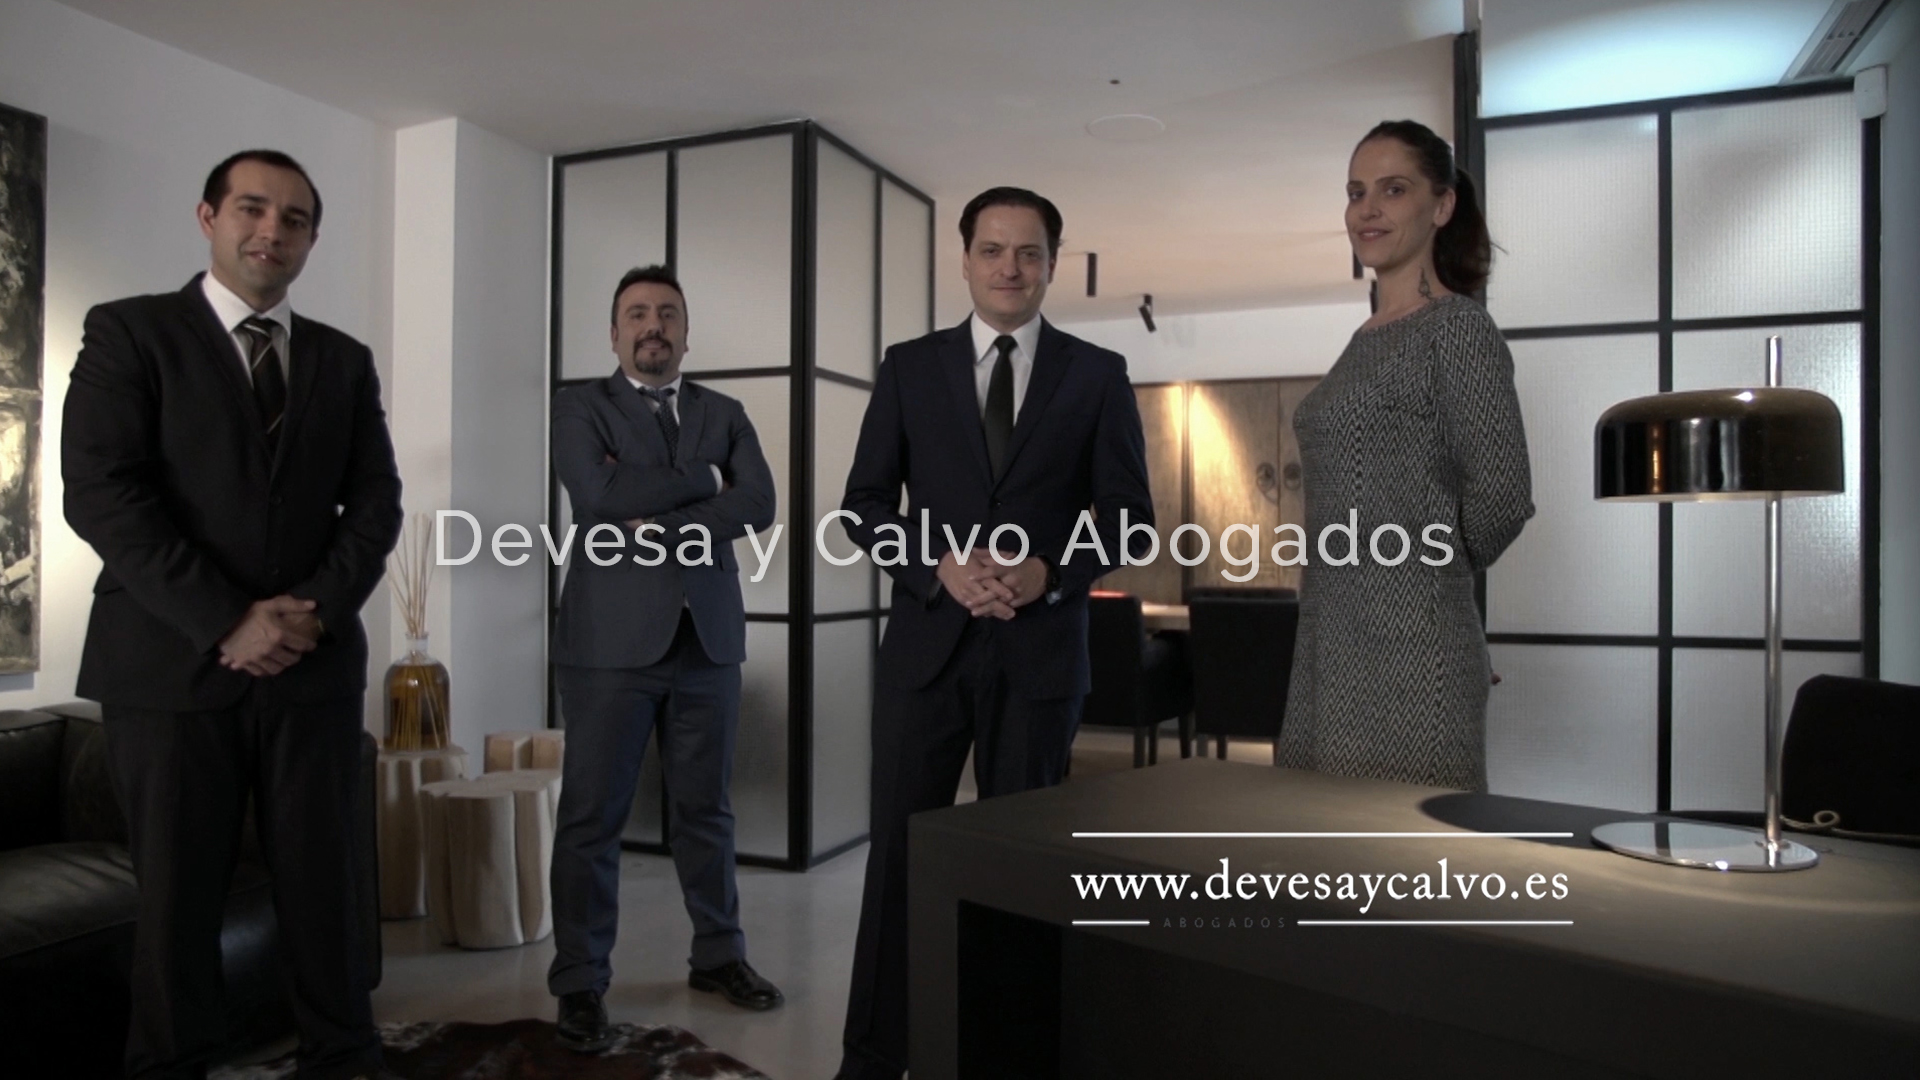 Vídeo corporativo Devesa y Calvo Abogados